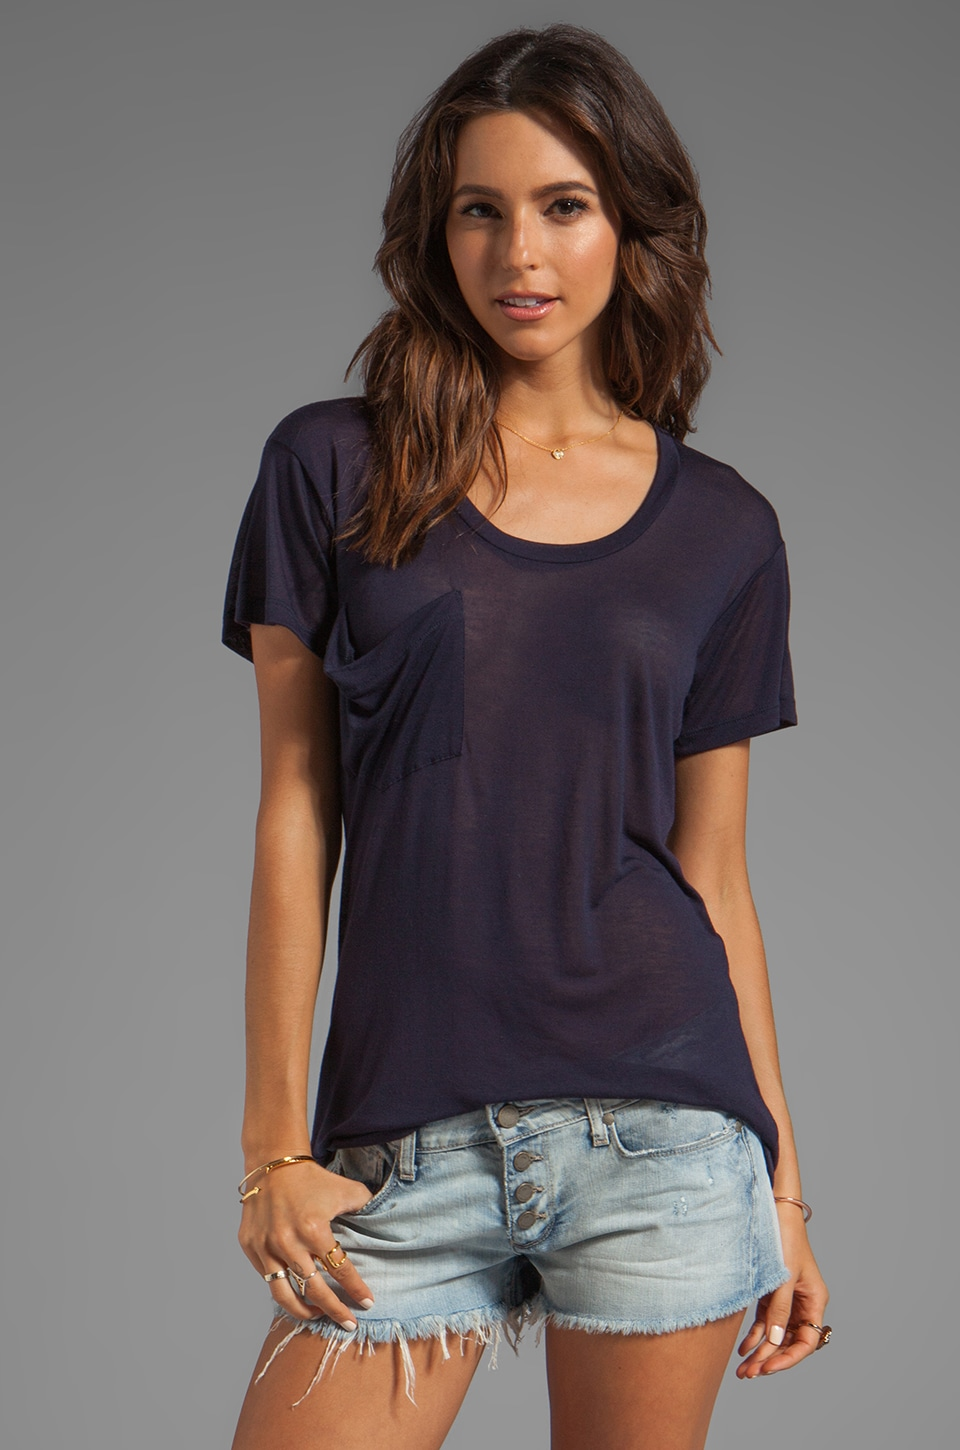 Kain Sheer Jersey Classic Pocket Tee in Navy